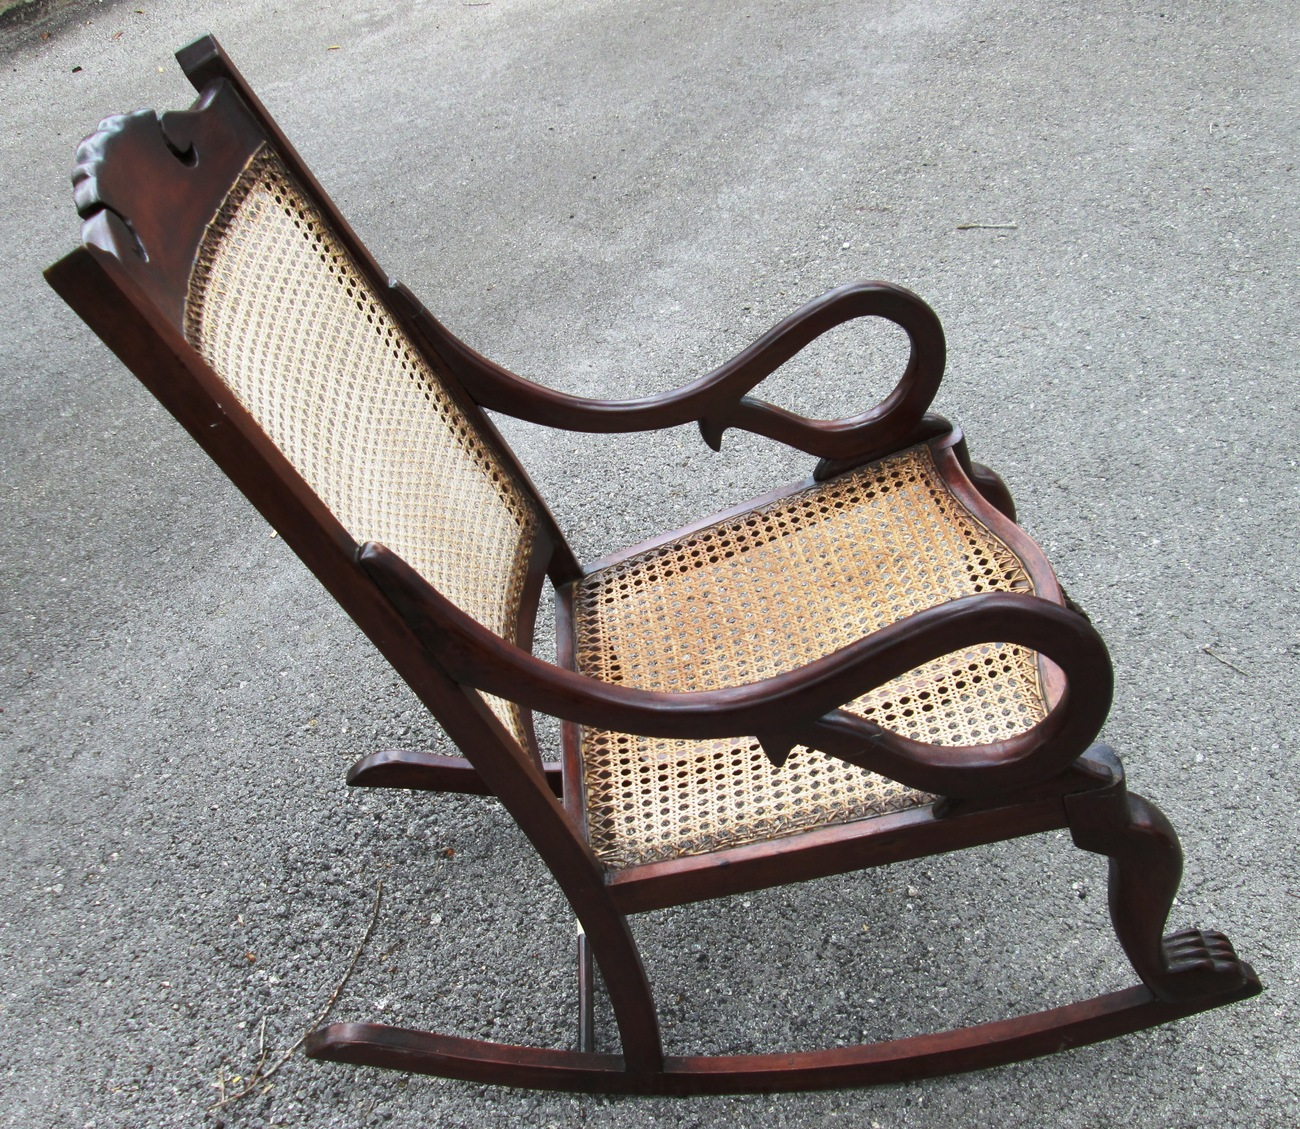 Rocking Chairs For Nursery, Rocking Chairs For Nursing, Rocking Chairs ...